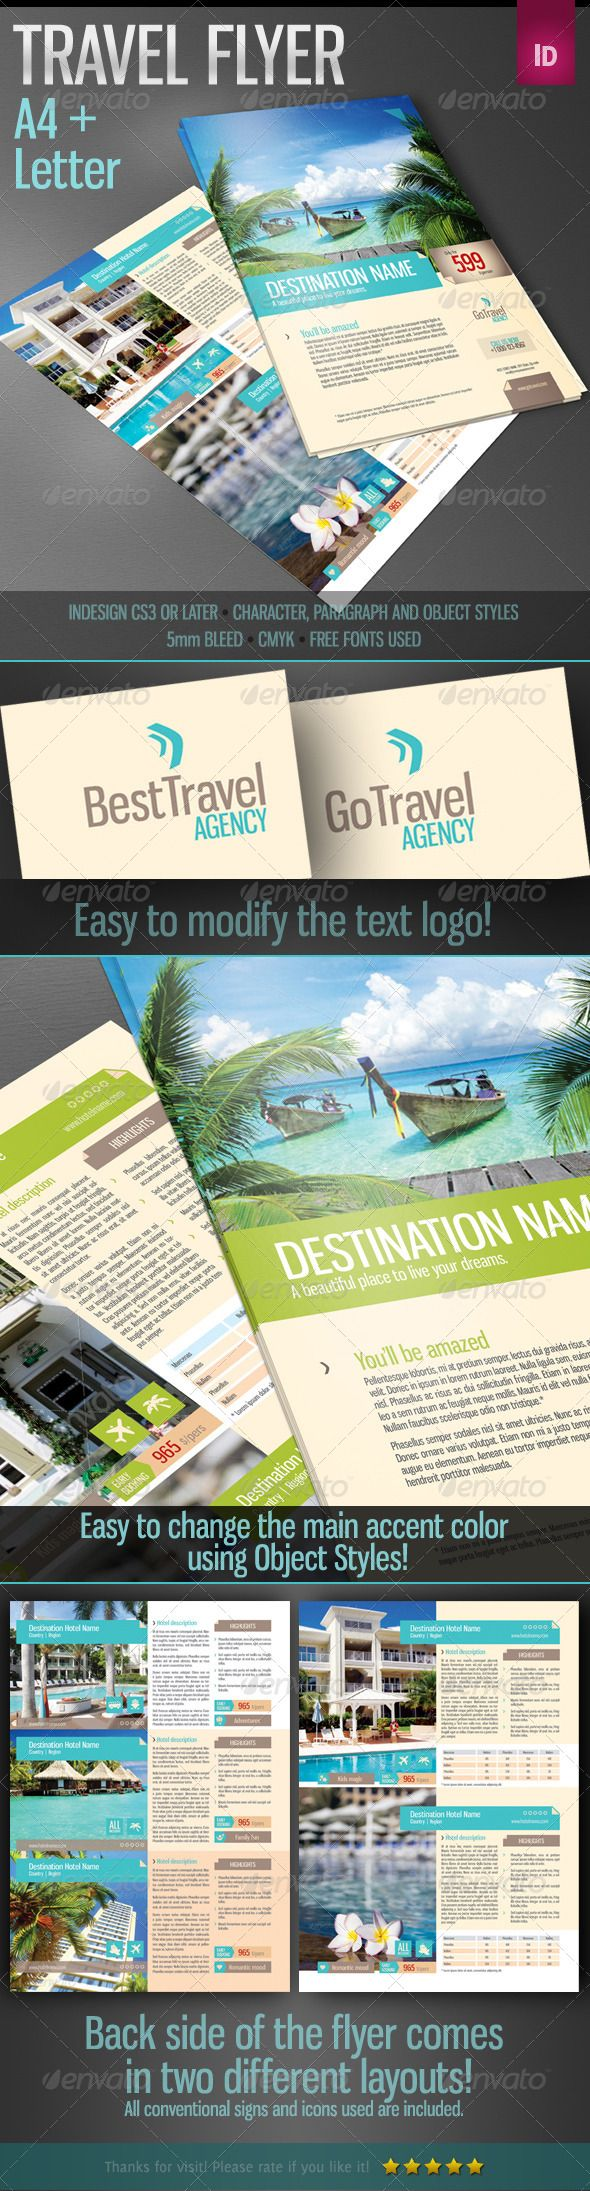 tourism brochure templates - 138 best tourism travel layout images on pinterest